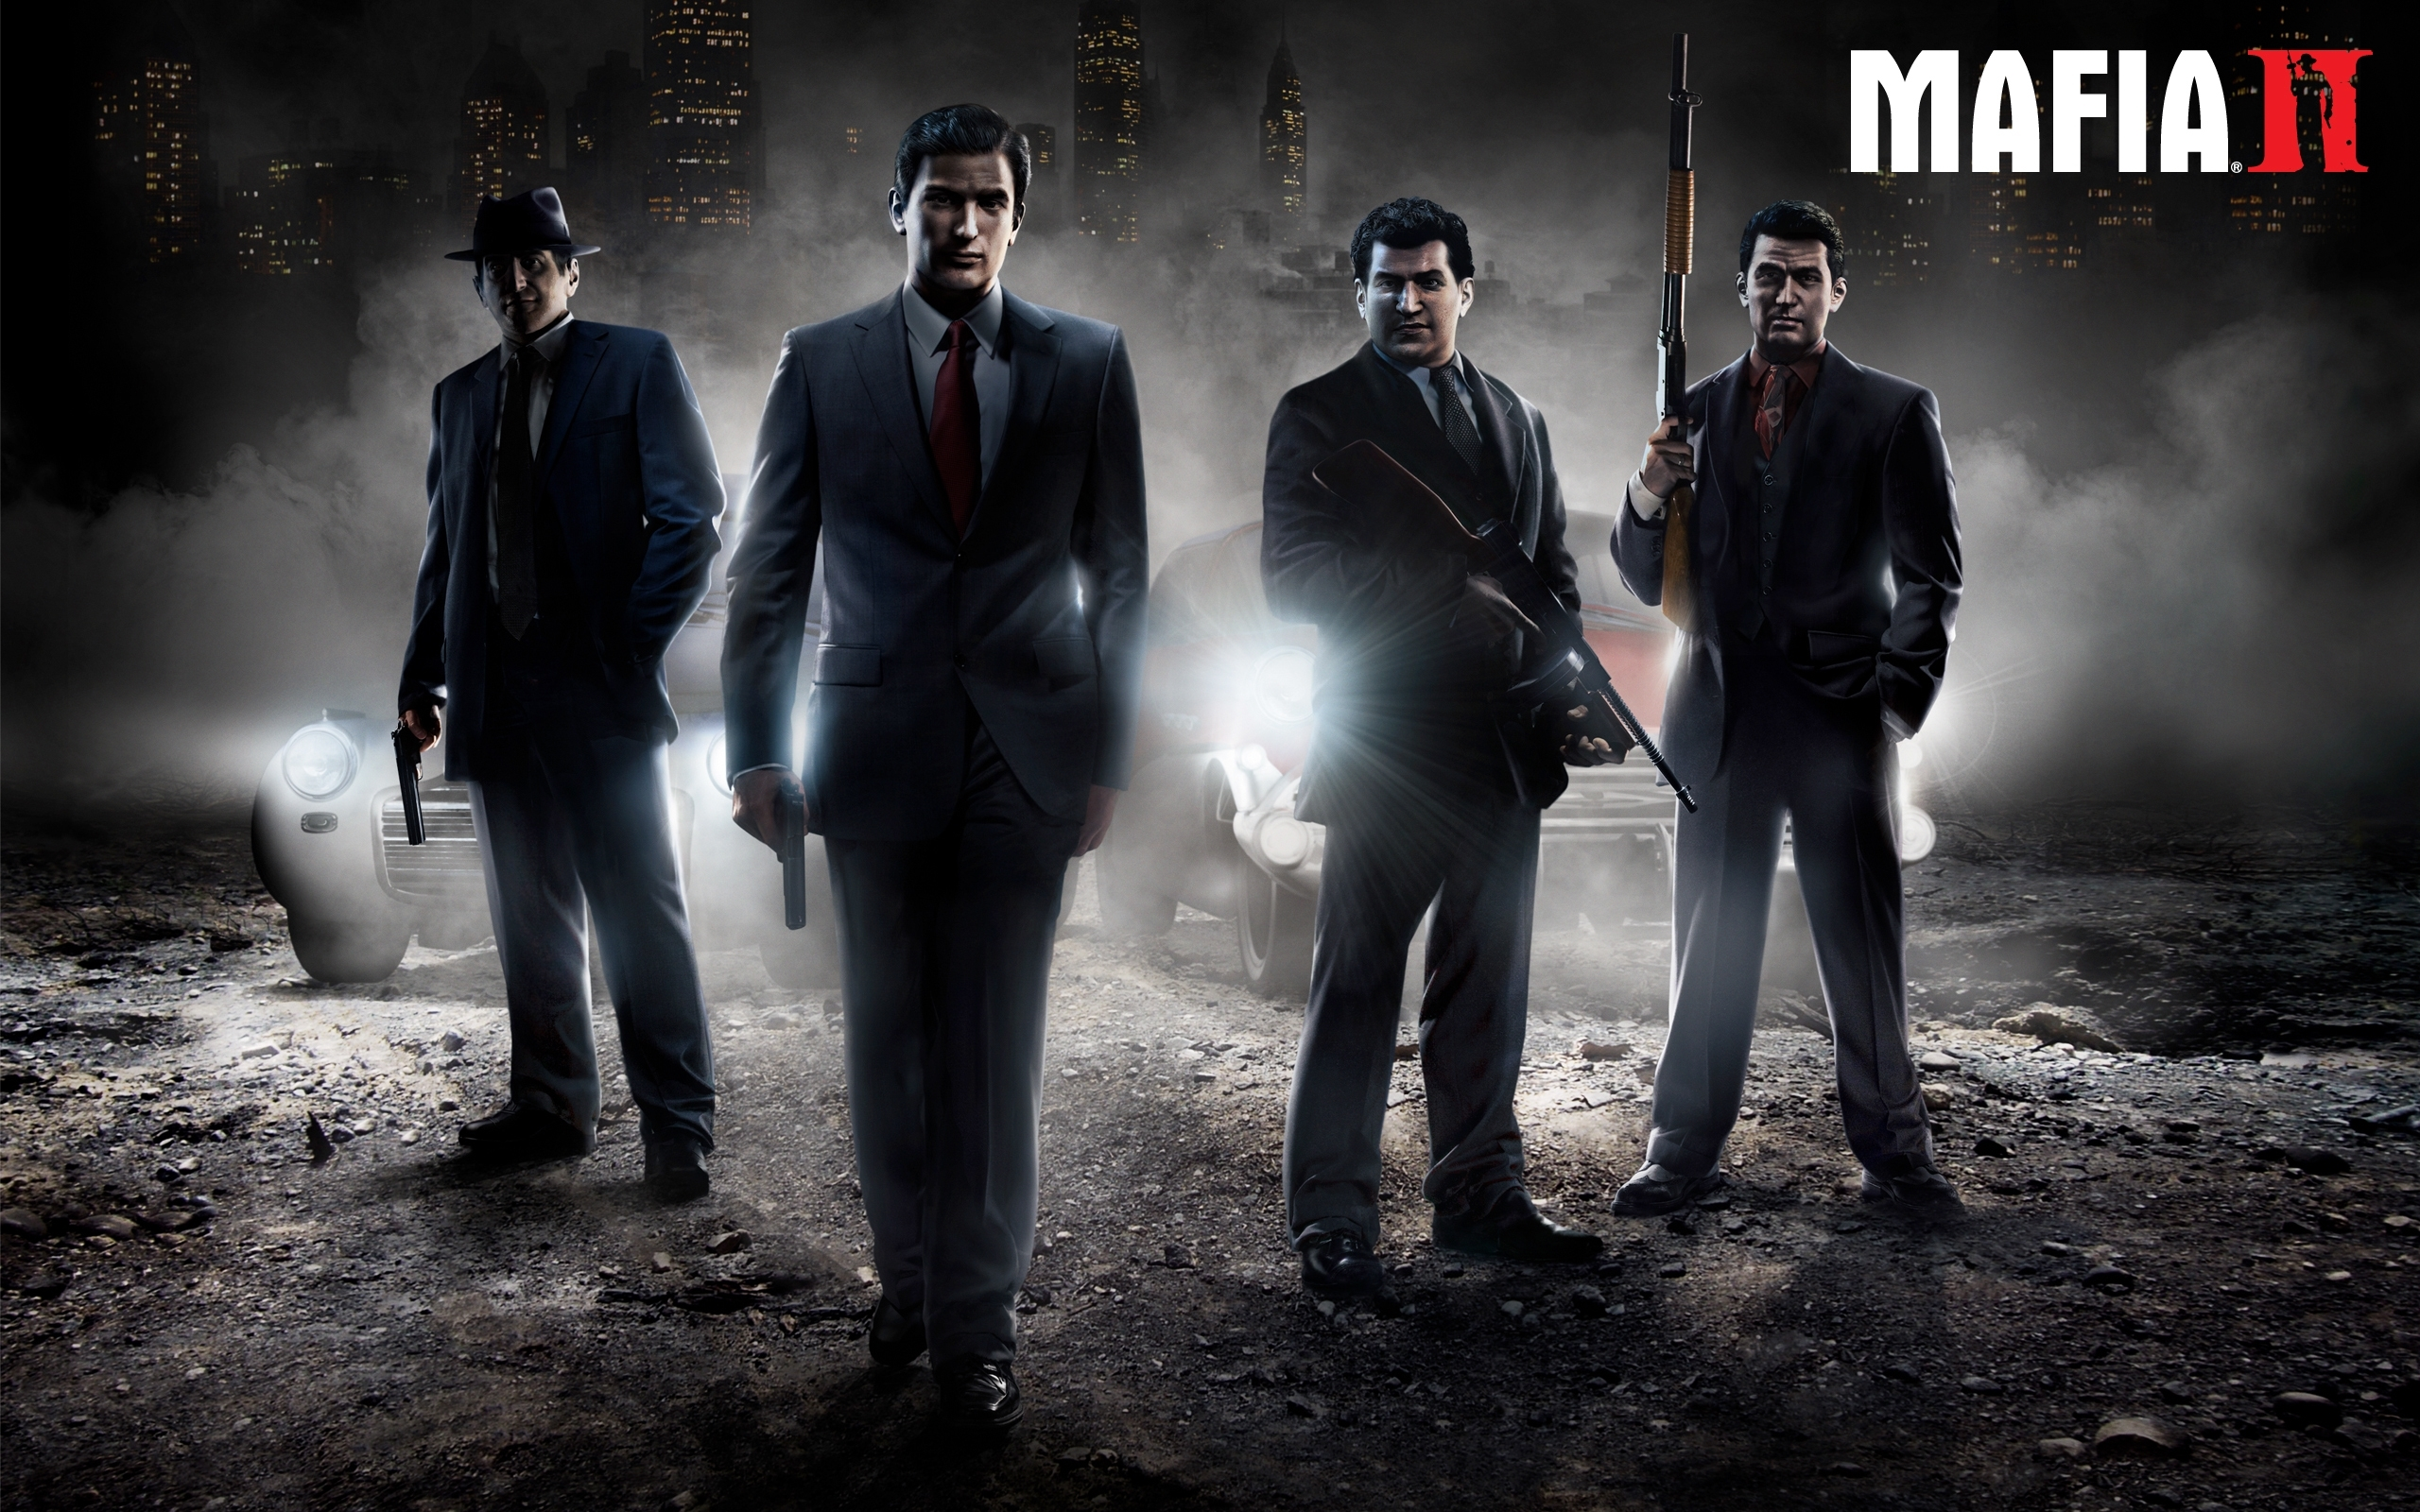 27587 download wallpaper Games, Mafia screensavers and pictures for free